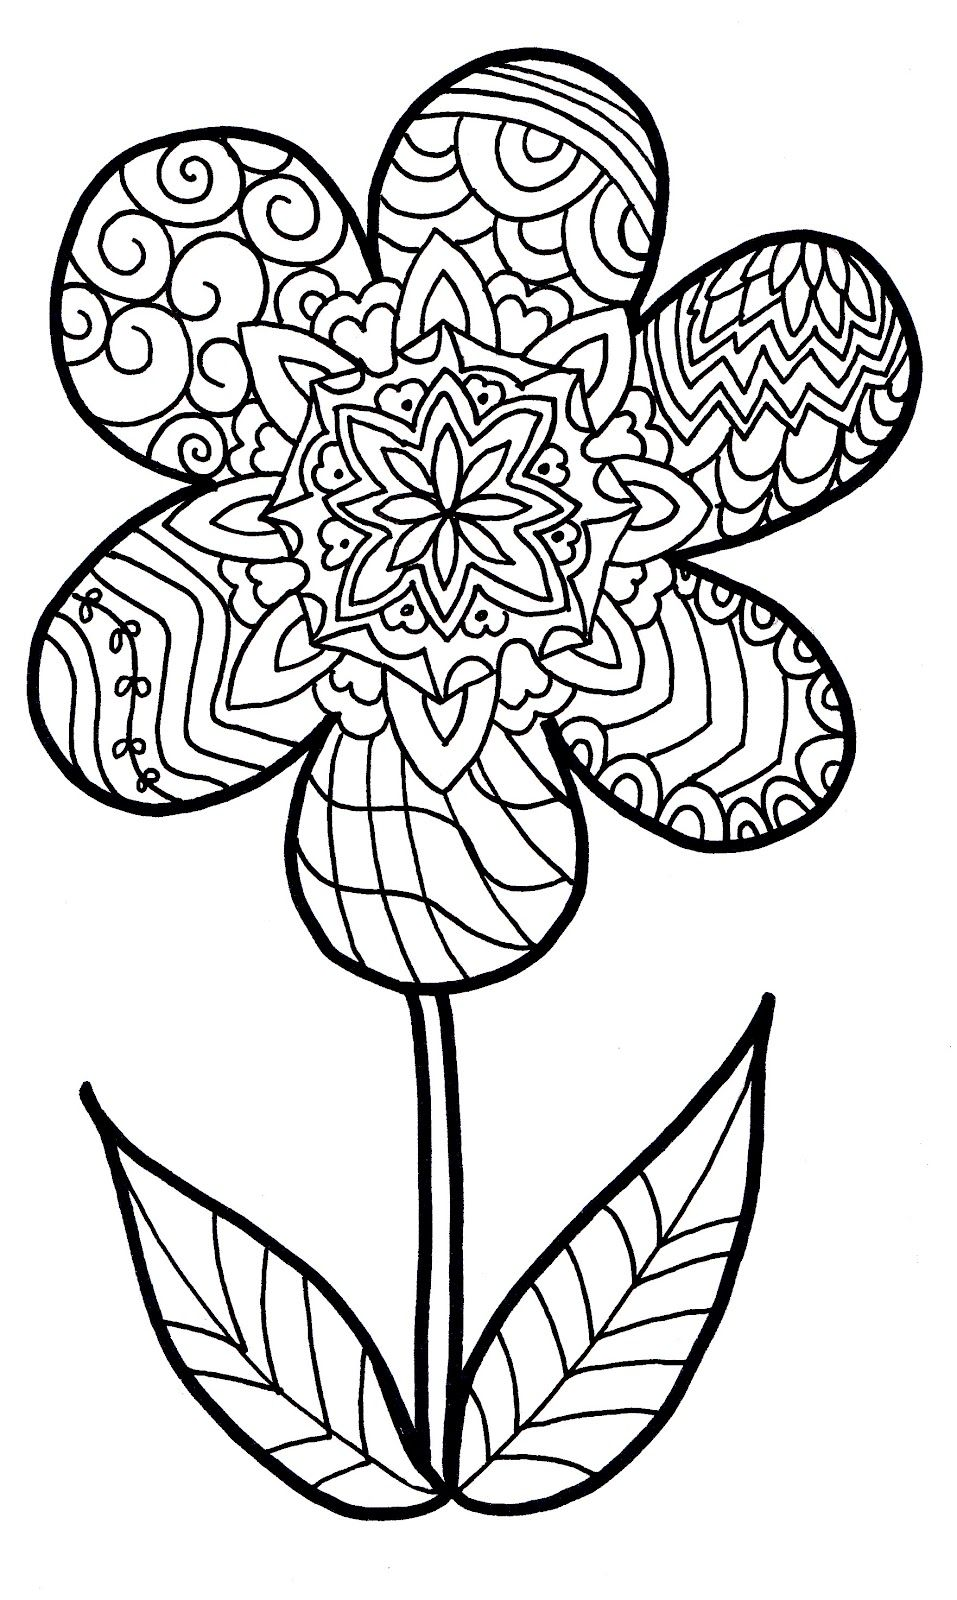 Flower+zentangle+colouring+page.jpg (957×1600) Coloring